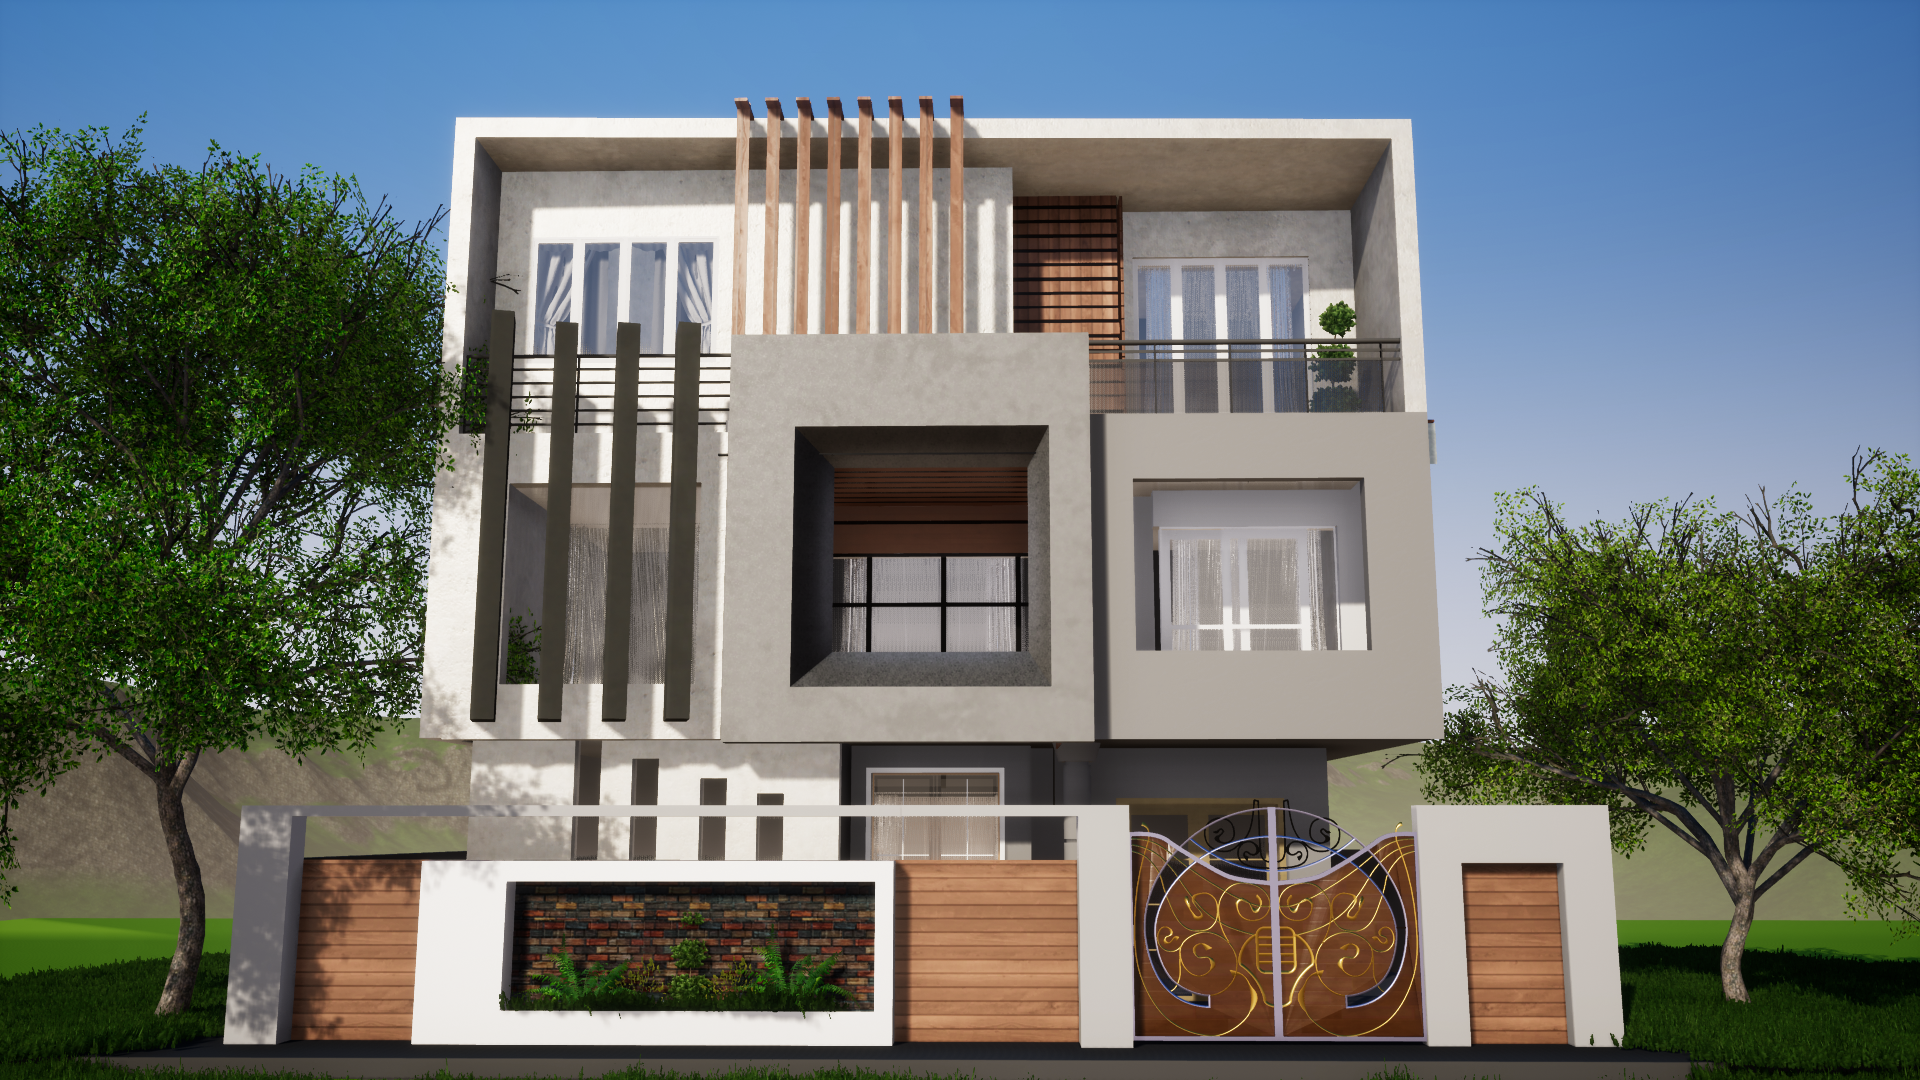 8b0d30644c4aa3e4ed5a378f0d2c2393 - 18+ Modern Small House Compound Wall Design Background